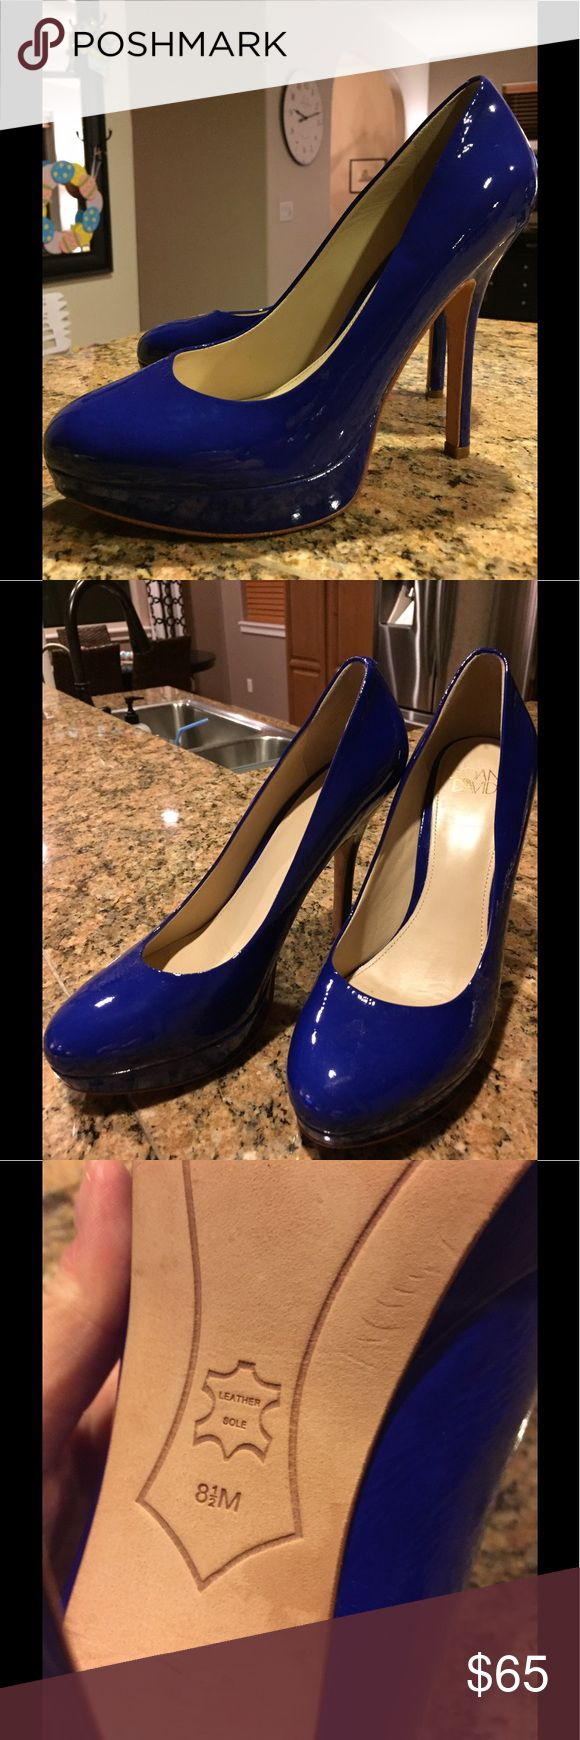 Joan & David Platform Heels Worn only once due to an injury! Patent leather with leather soles- Extremely comfortable! Gorgeous blue color with zero signs of wear. I'm open to offer- must clean out my closet. :) Joan & David Shoes Heels